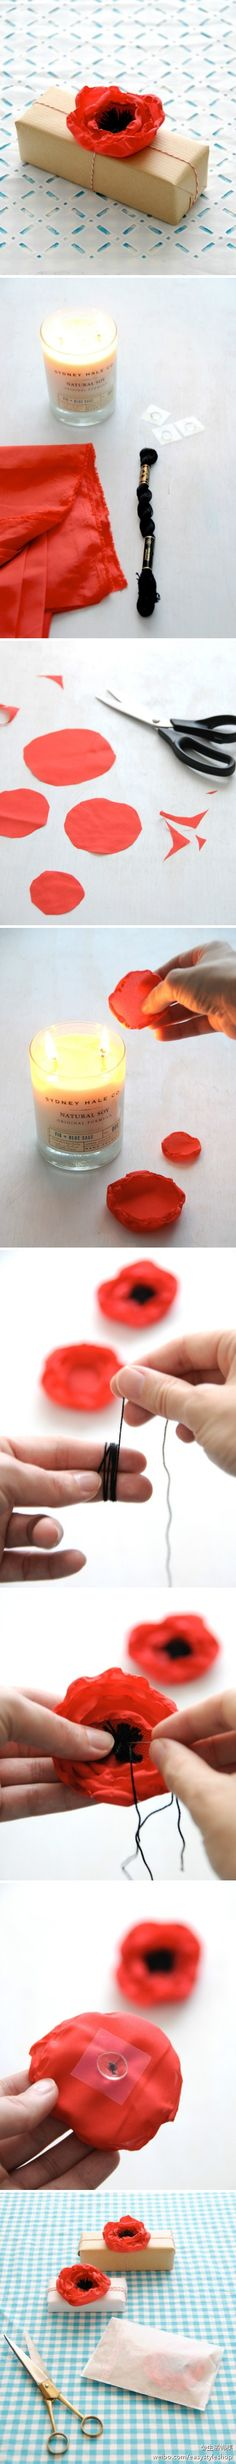 This could be used on canvases, pillows, hair items, etc.  (adults should do the candle part of this project)....poppy flowerThis says:  ...brown paper package tied up with string